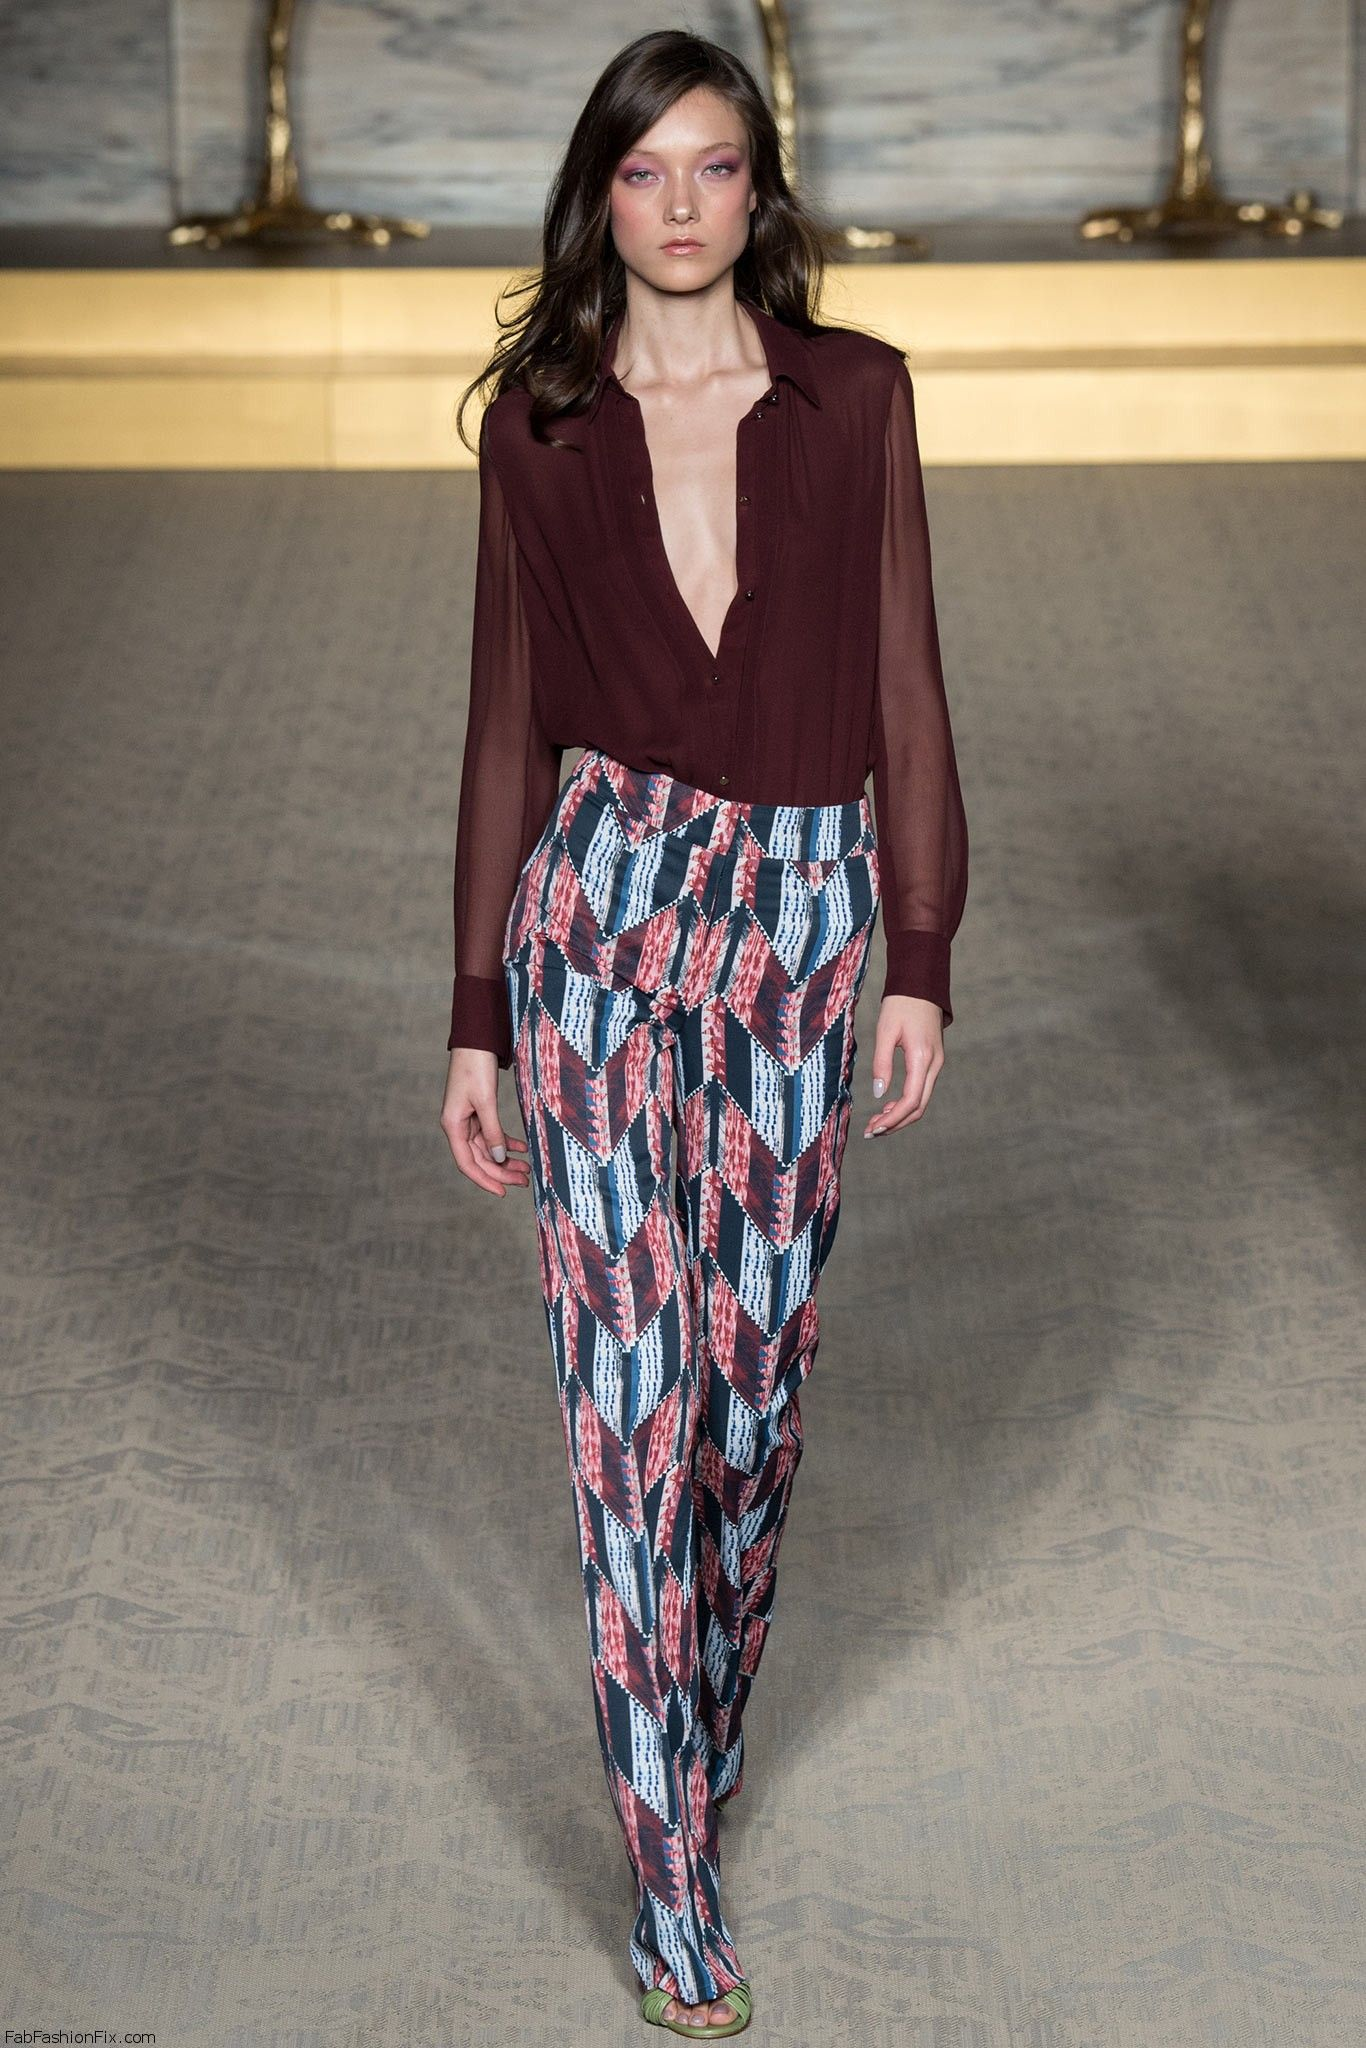 ... new spring/summer 2015 collection at London fashion week spring 2015